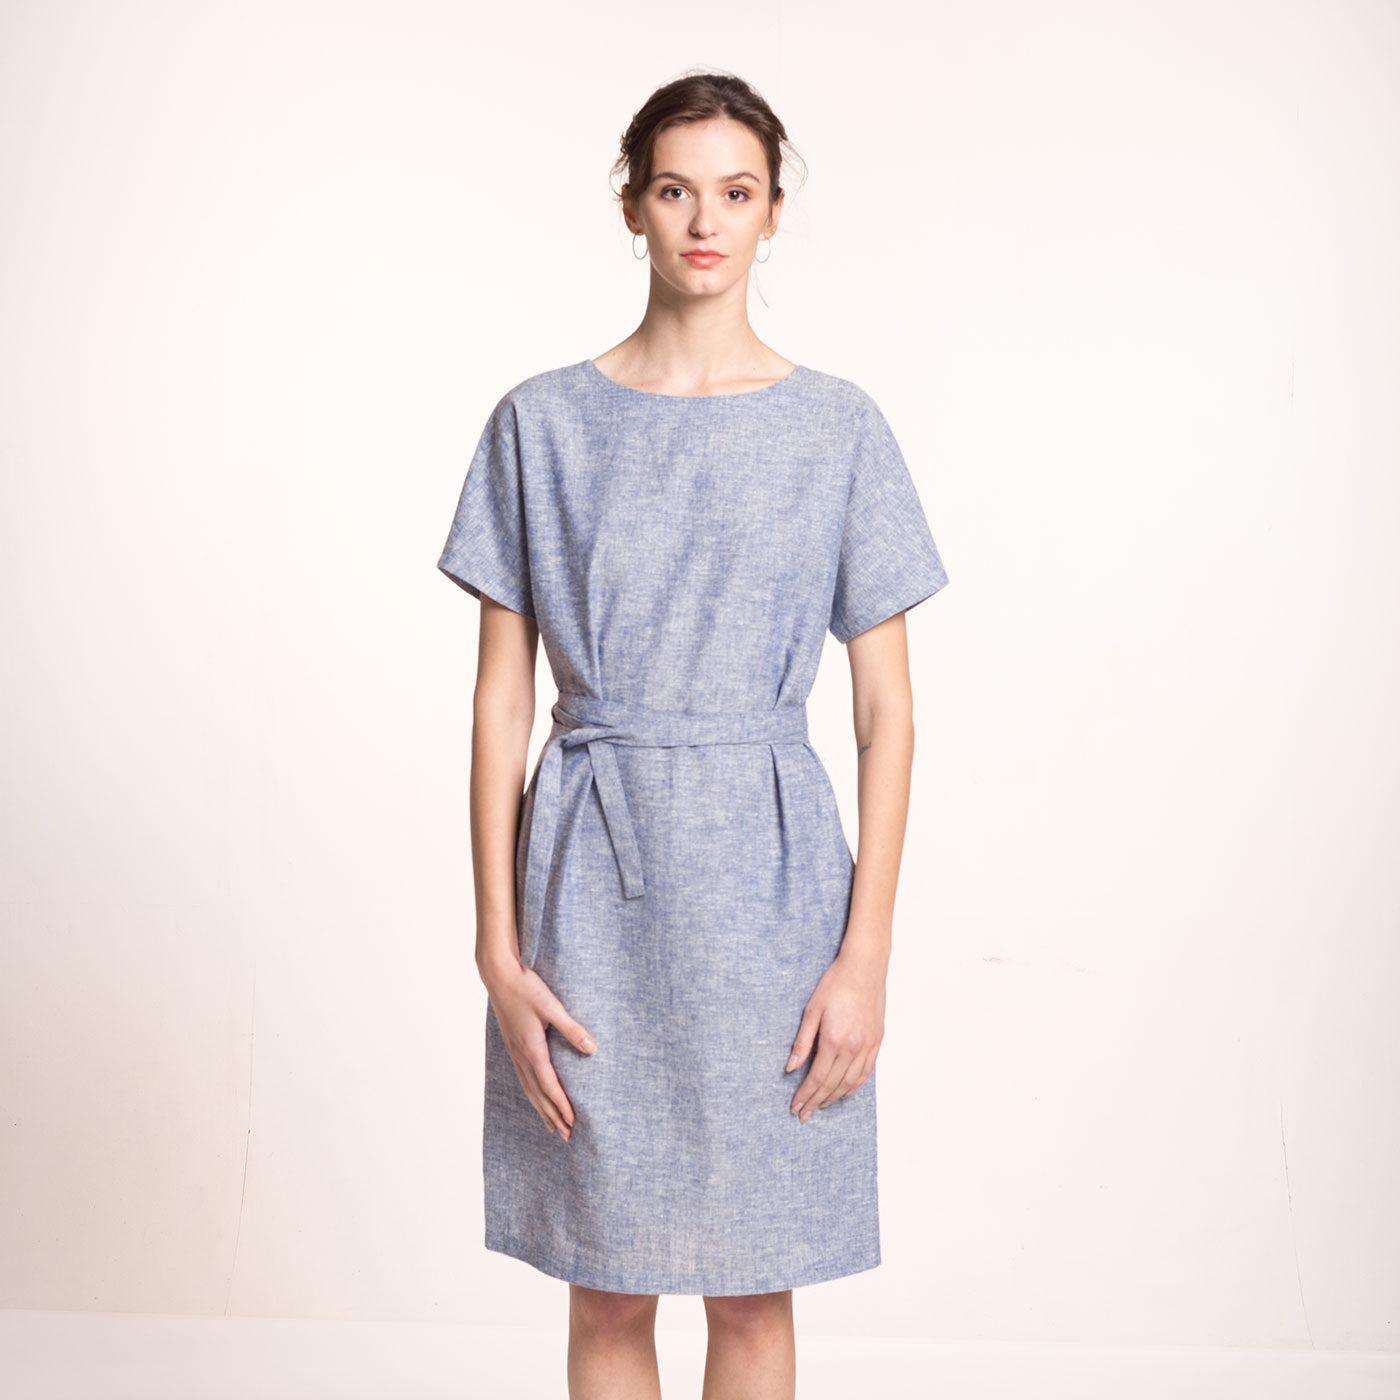 The model wears a light blue, sustainable, organic cotton and hemp dress, with short sleeves and round neckline and a fabric belt, front view